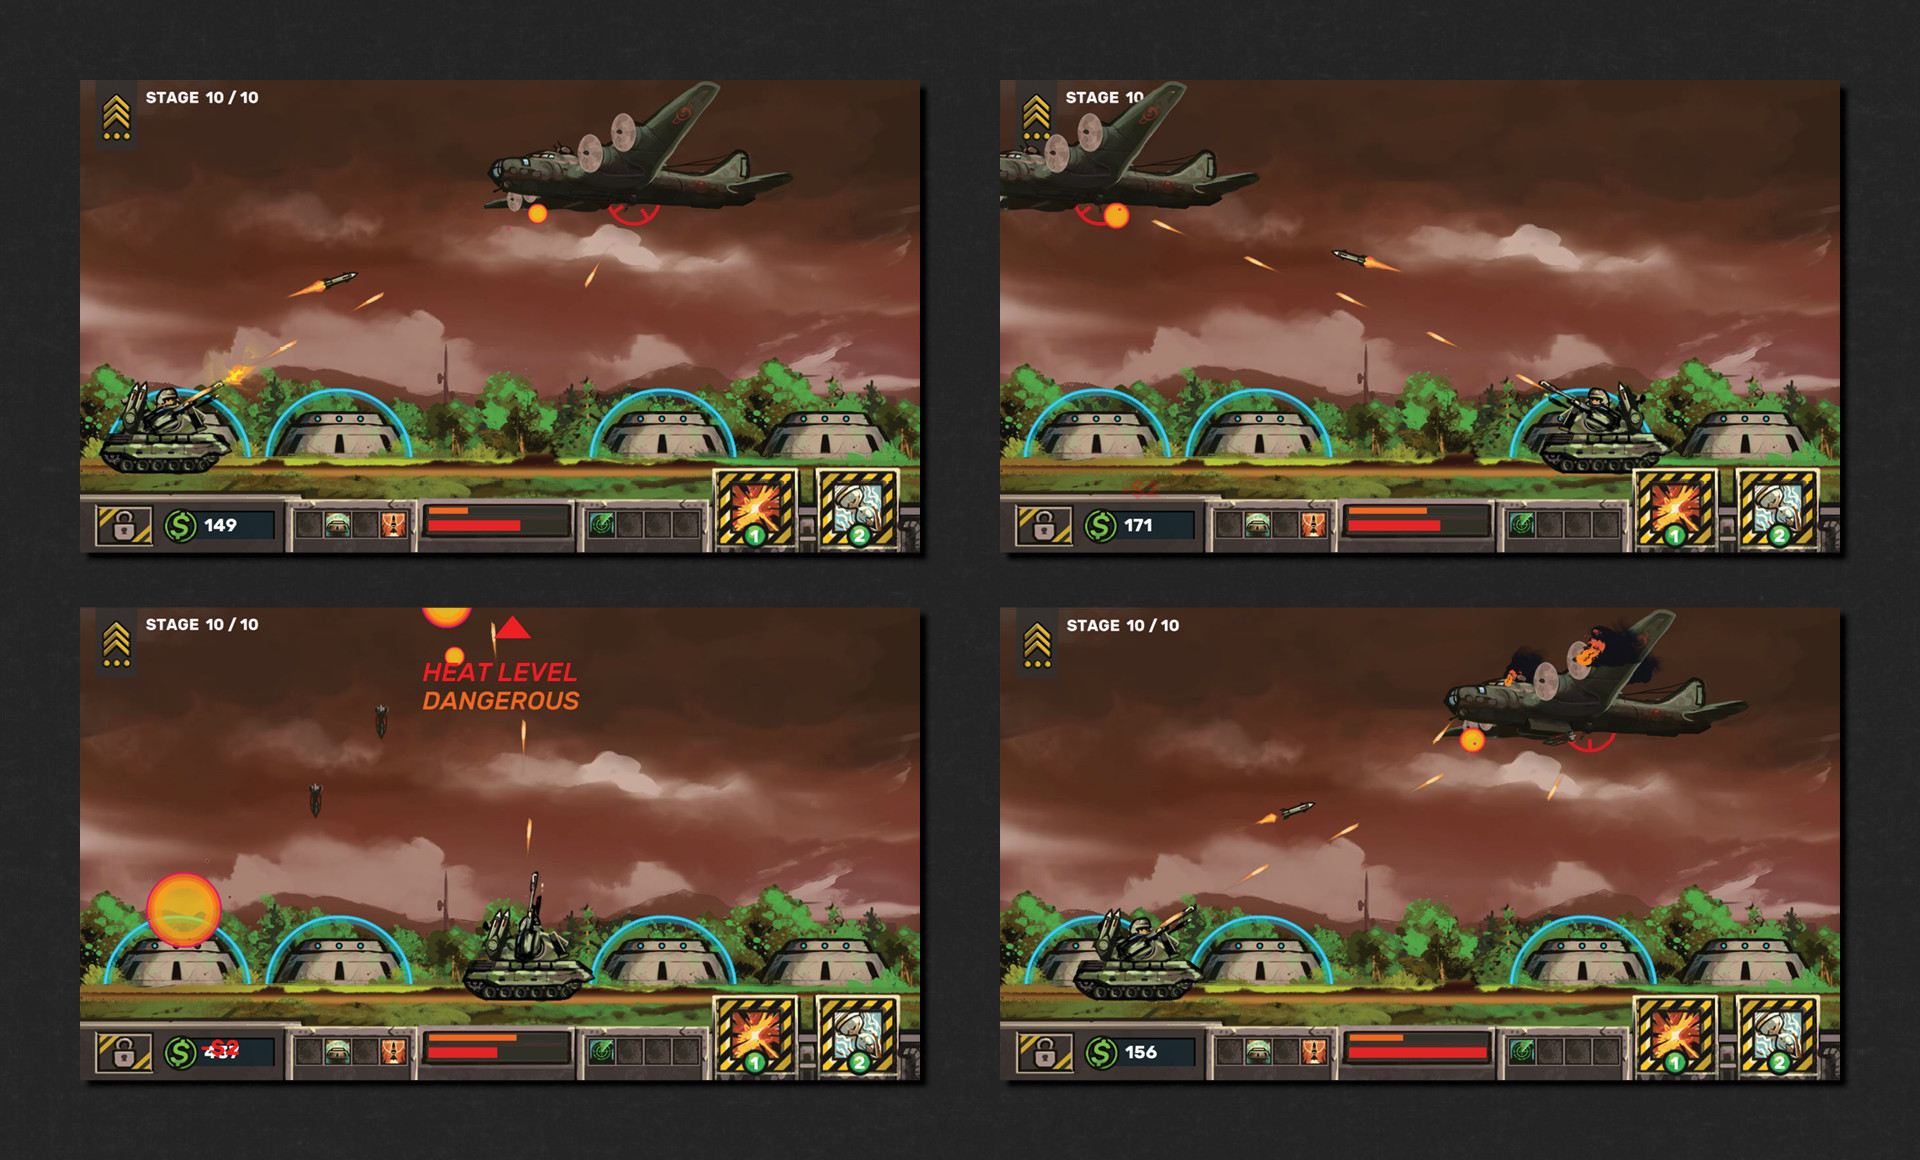 At the end of the level, the last stage or wave will include a boss fight that'll bring a refreshing change to difficulty and gameplay style. This boss in question has two constantly alternating phases, along with three major ones.